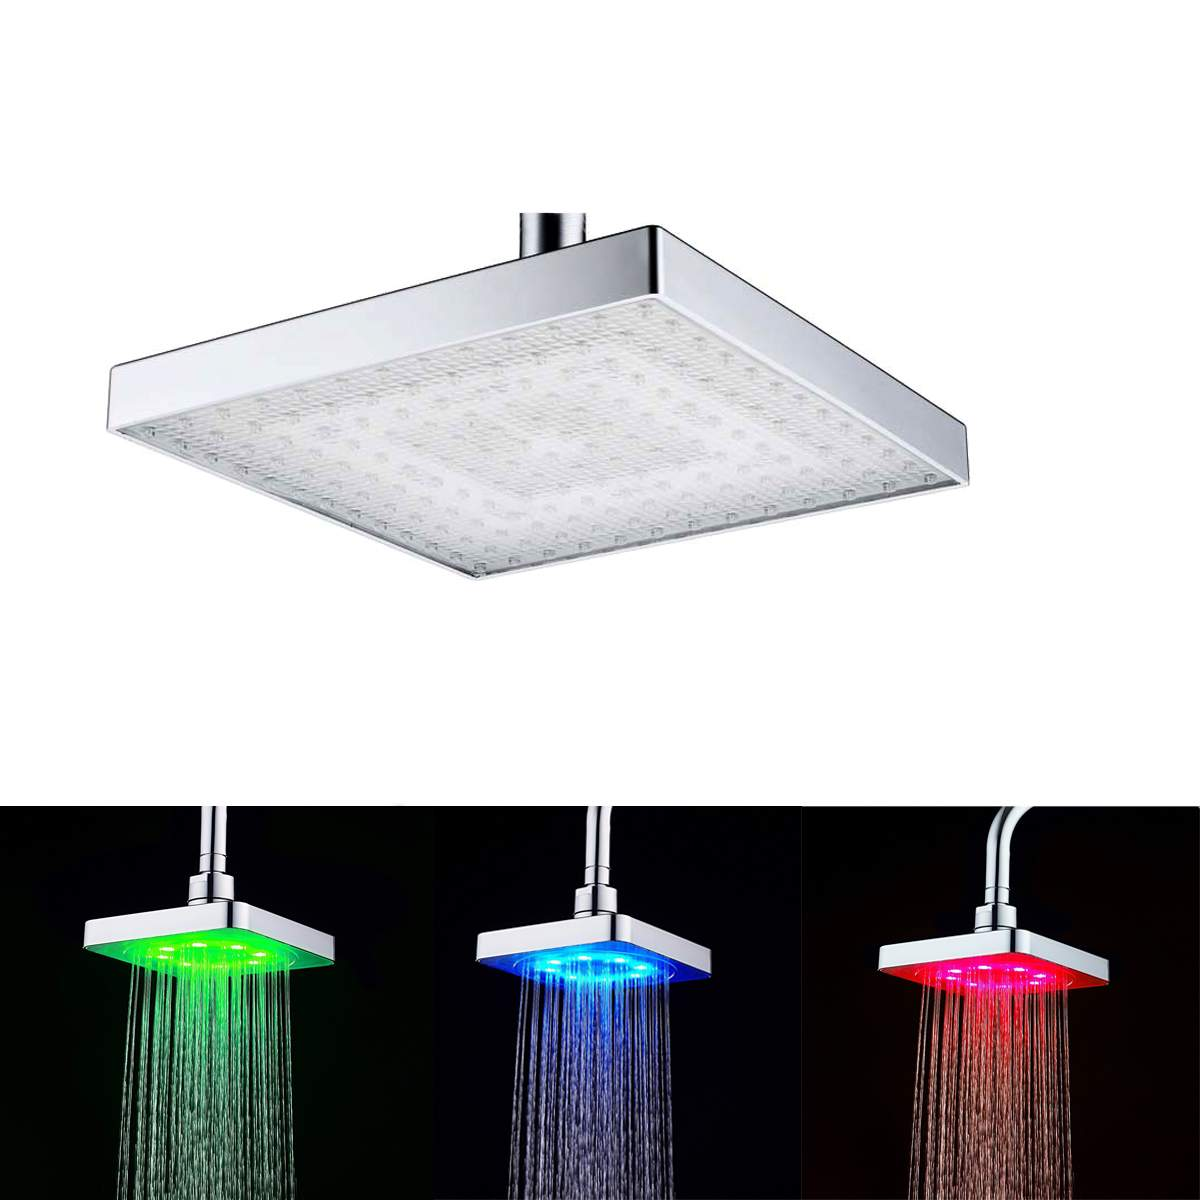 Xueqin 6 Inch ABS Square Rainfall LED Changing Shower Head Bathroom Adjustable Water Flow Spray Temperature Sensor Chrome Finish